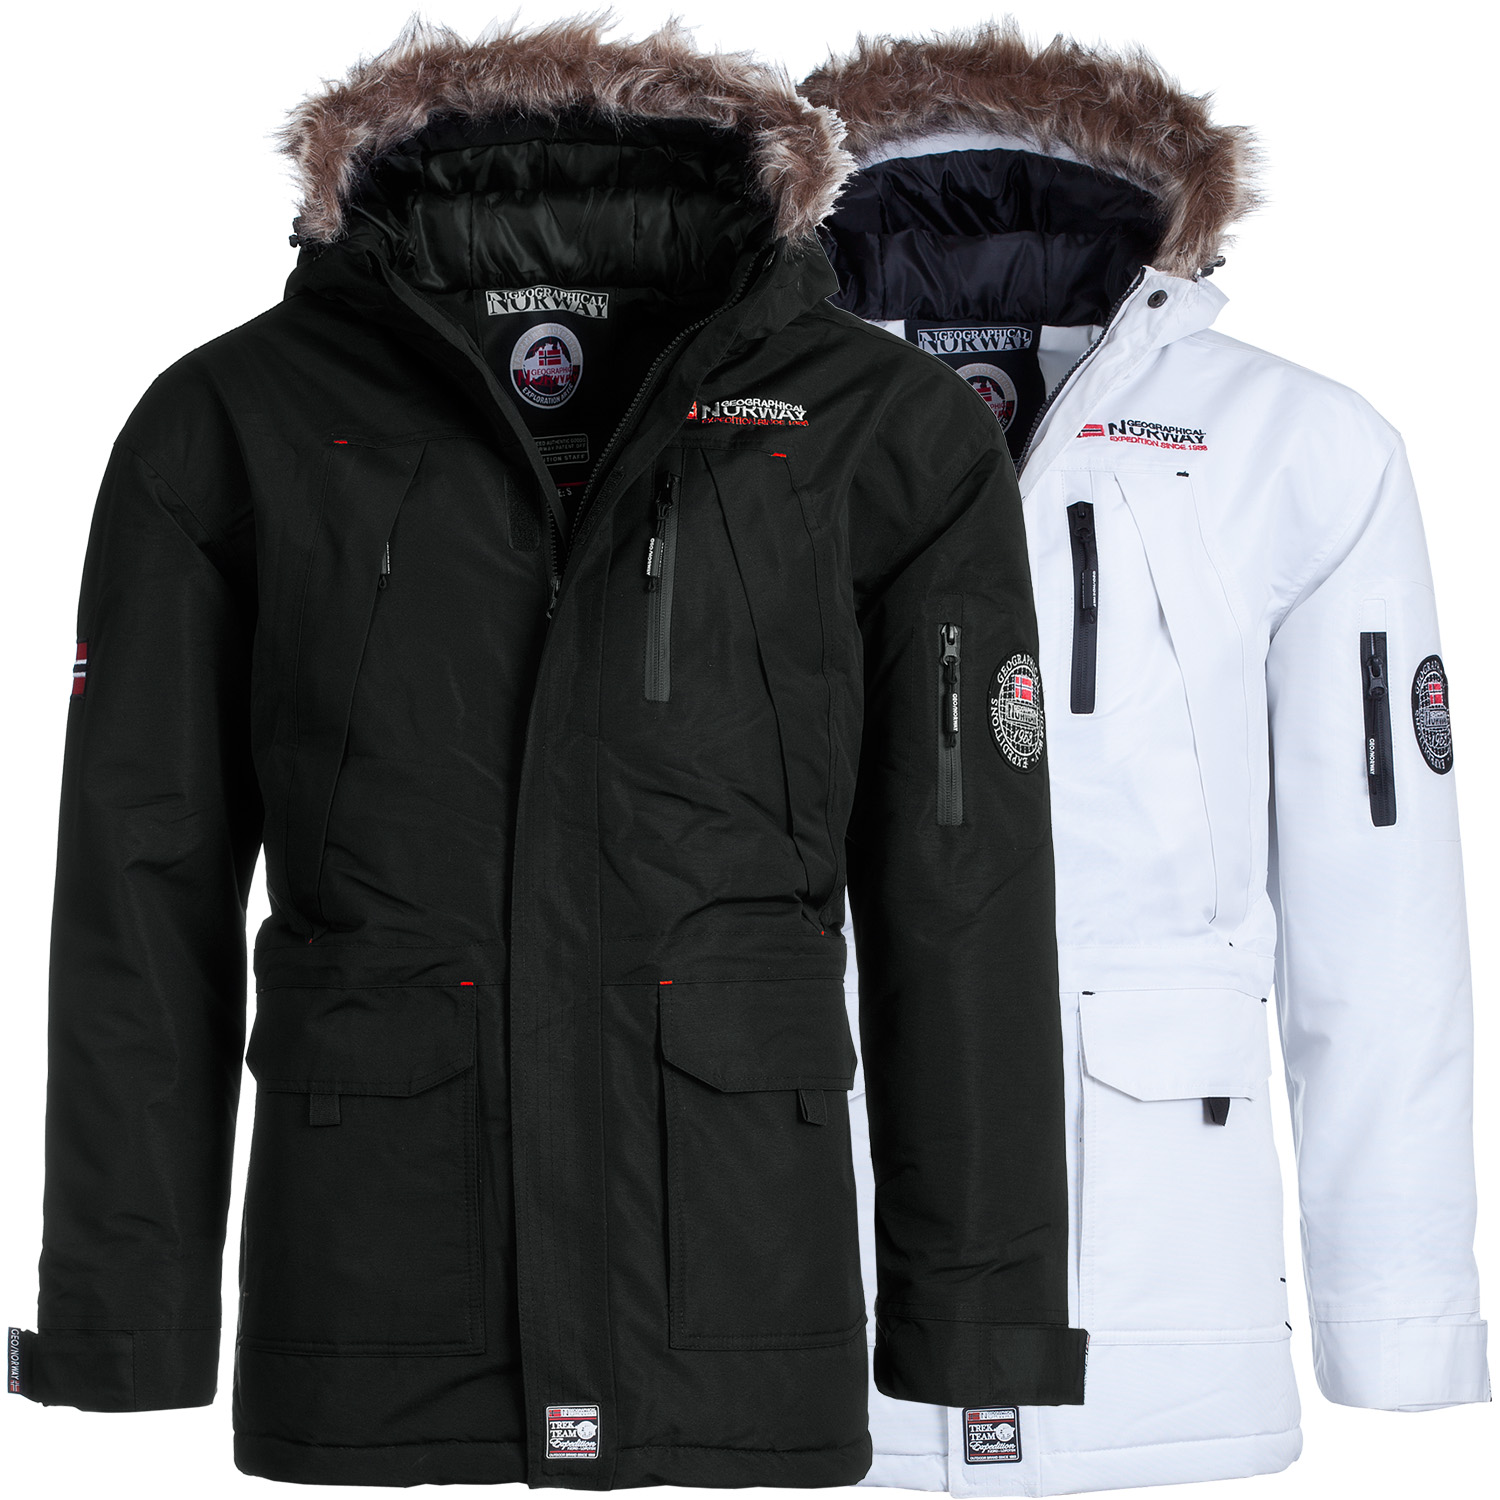 geographical norway donuts herren winterjacke winter parker jacke ski sport ebay. Black Bedroom Furniture Sets. Home Design Ideas